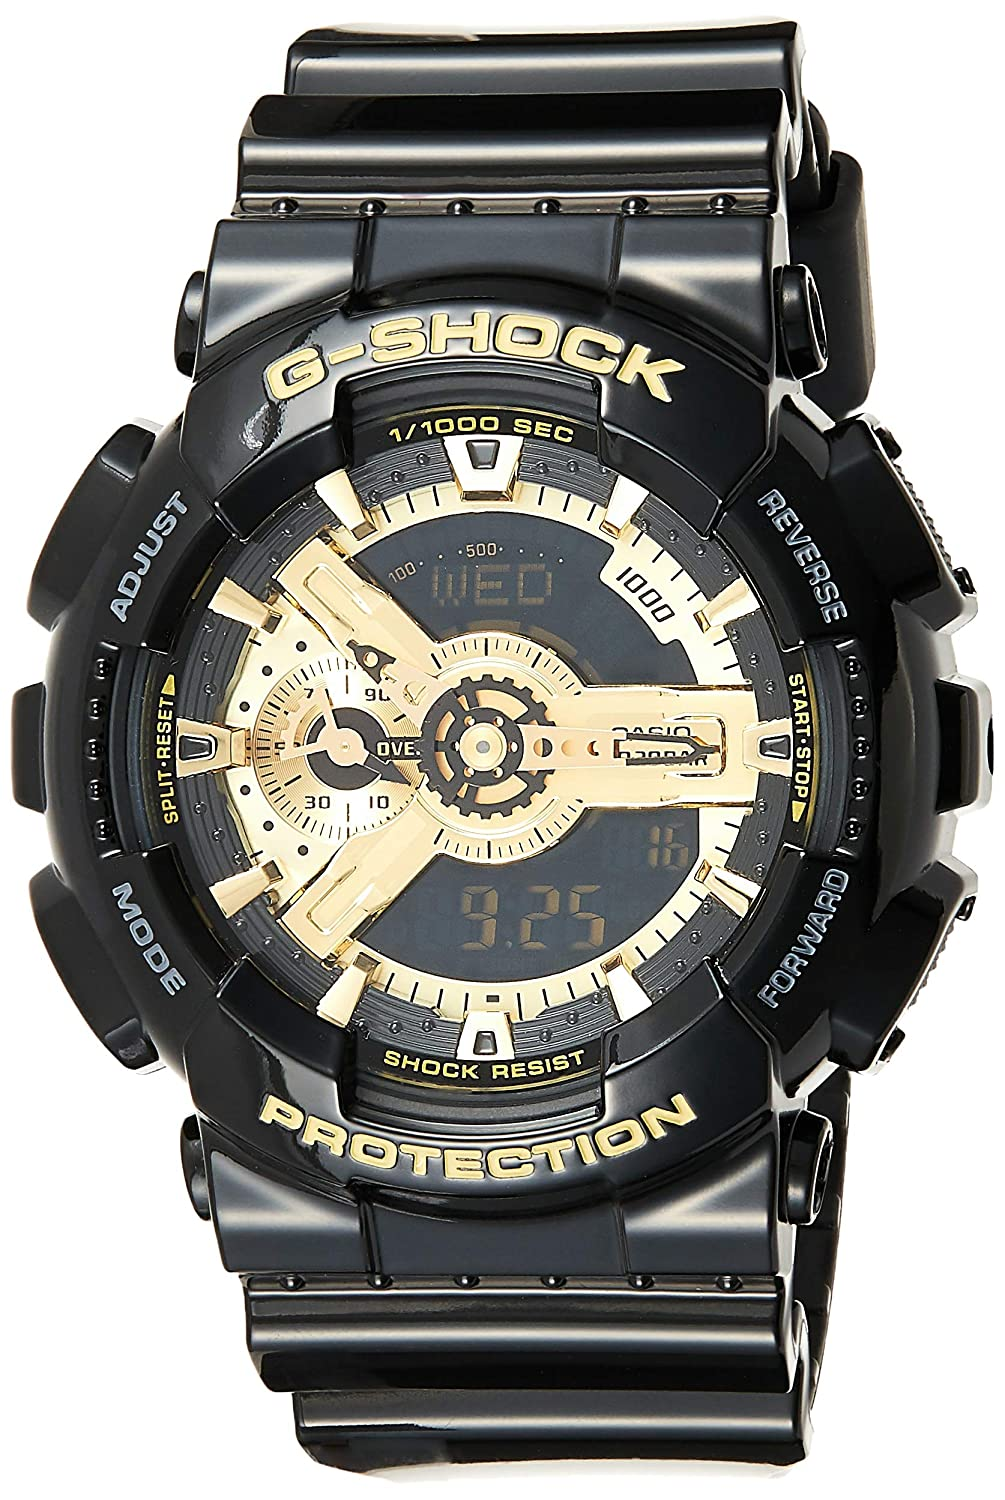 Casio Men s Analogue Digital Quartz Watch with Resin Strap GA-110GB-1AER